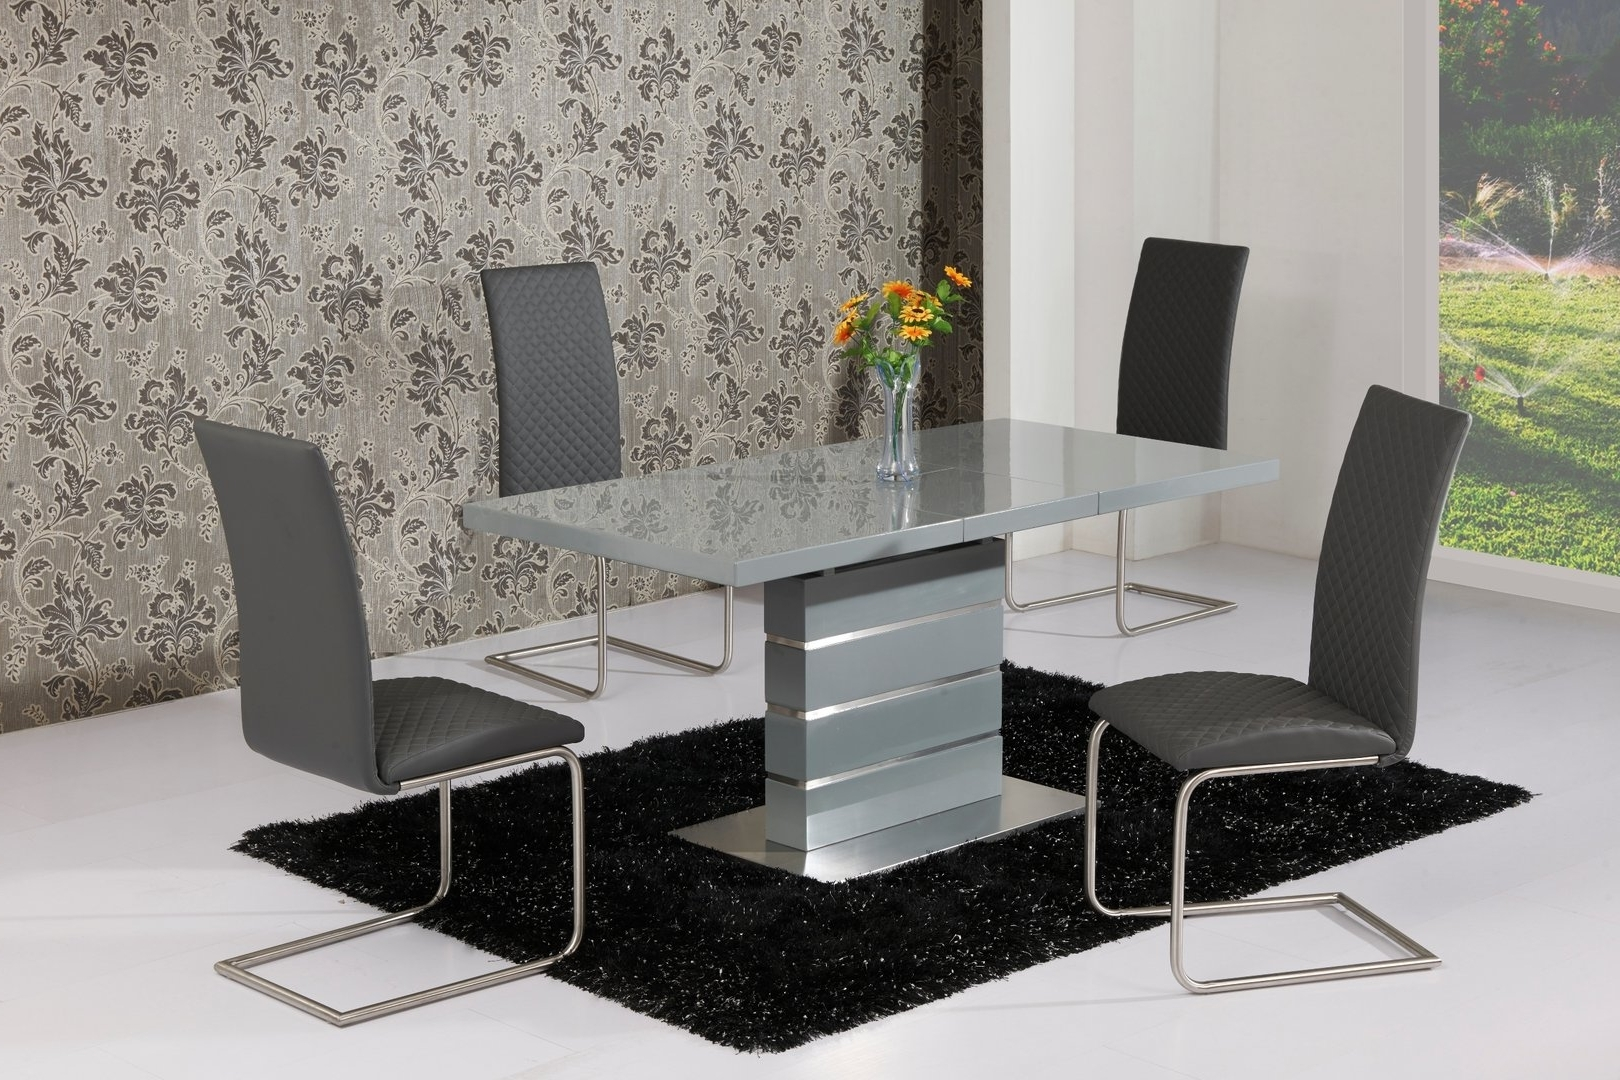 Extending Grey High Gloss Dining Table And 4 Grey Chairs in Current Gloss Dining Tables Sets